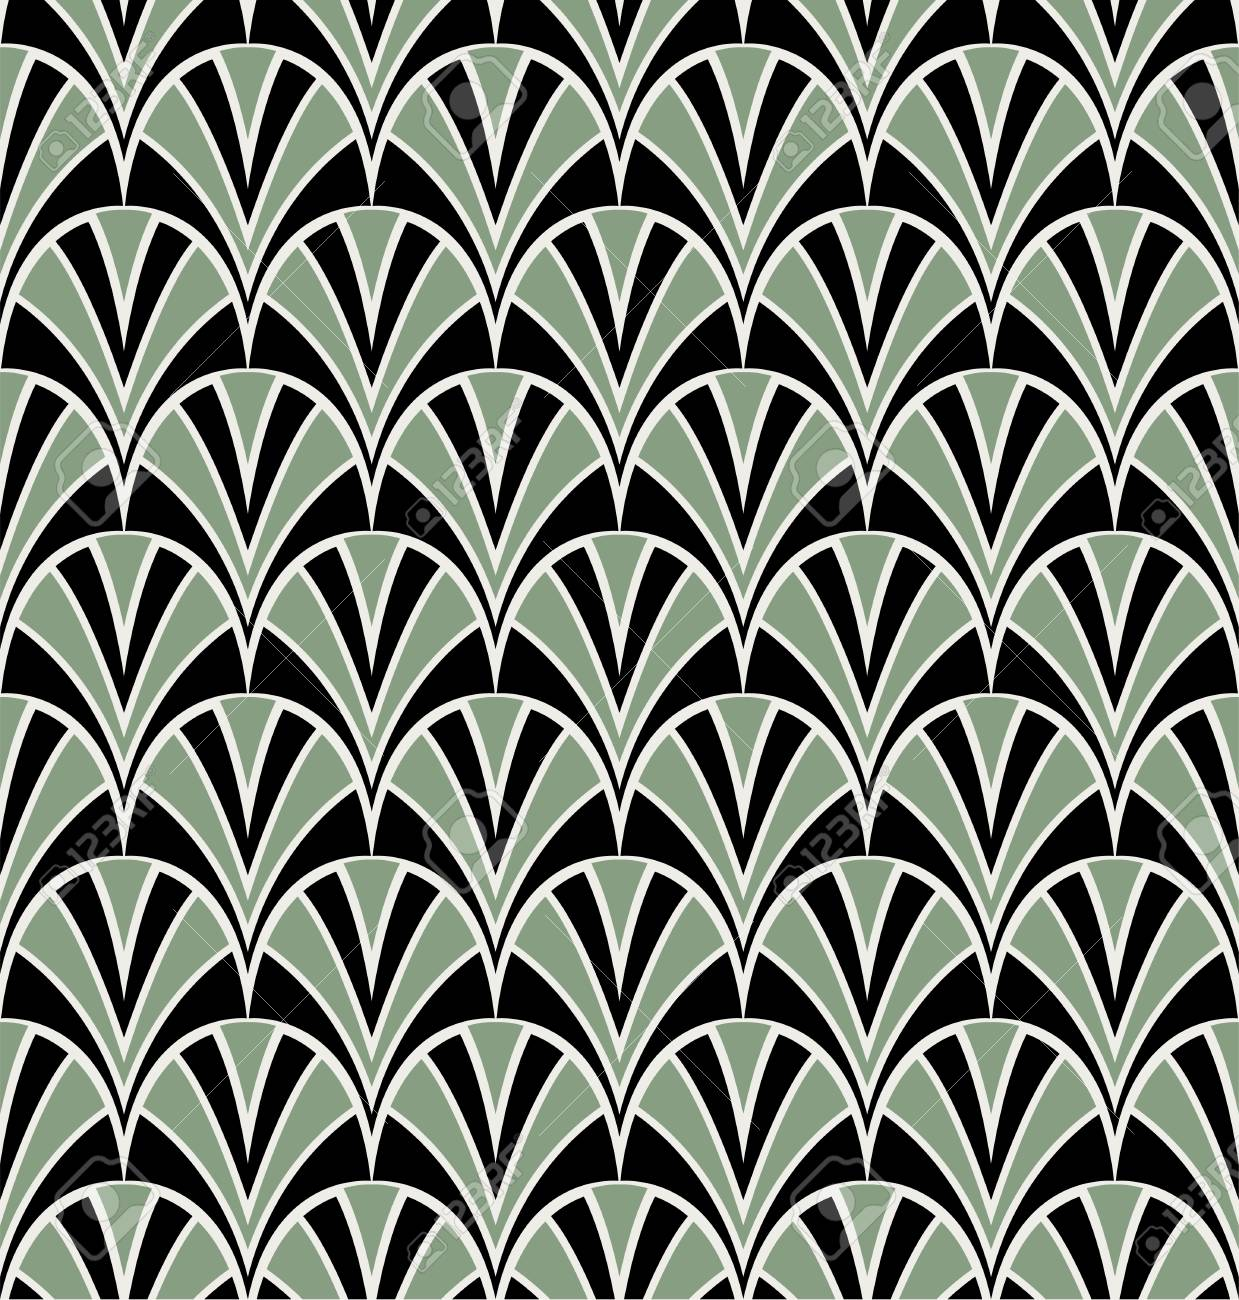 Decoration Art Deco Art Deco Seamless Pattern Background Geometric Decorative Texture